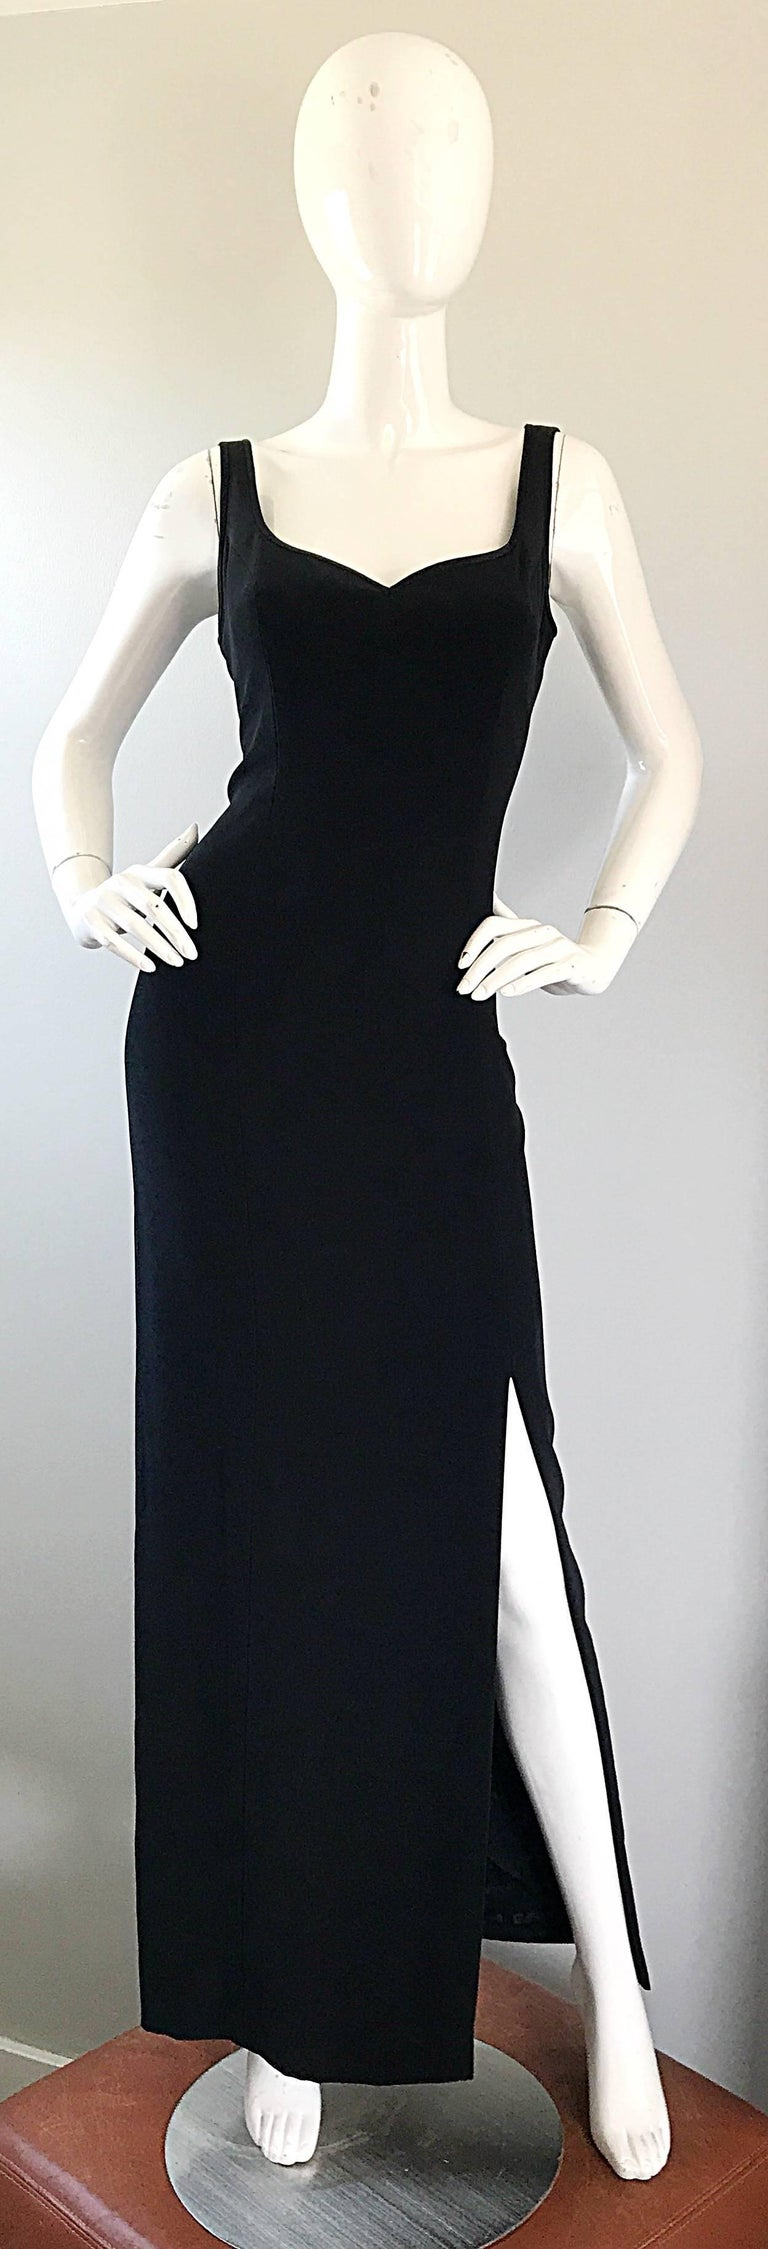 1990s Bob Mackie Size 10 Black Crepe Sexy 90s Vintage High Slit Evening Gown  For Sale 2